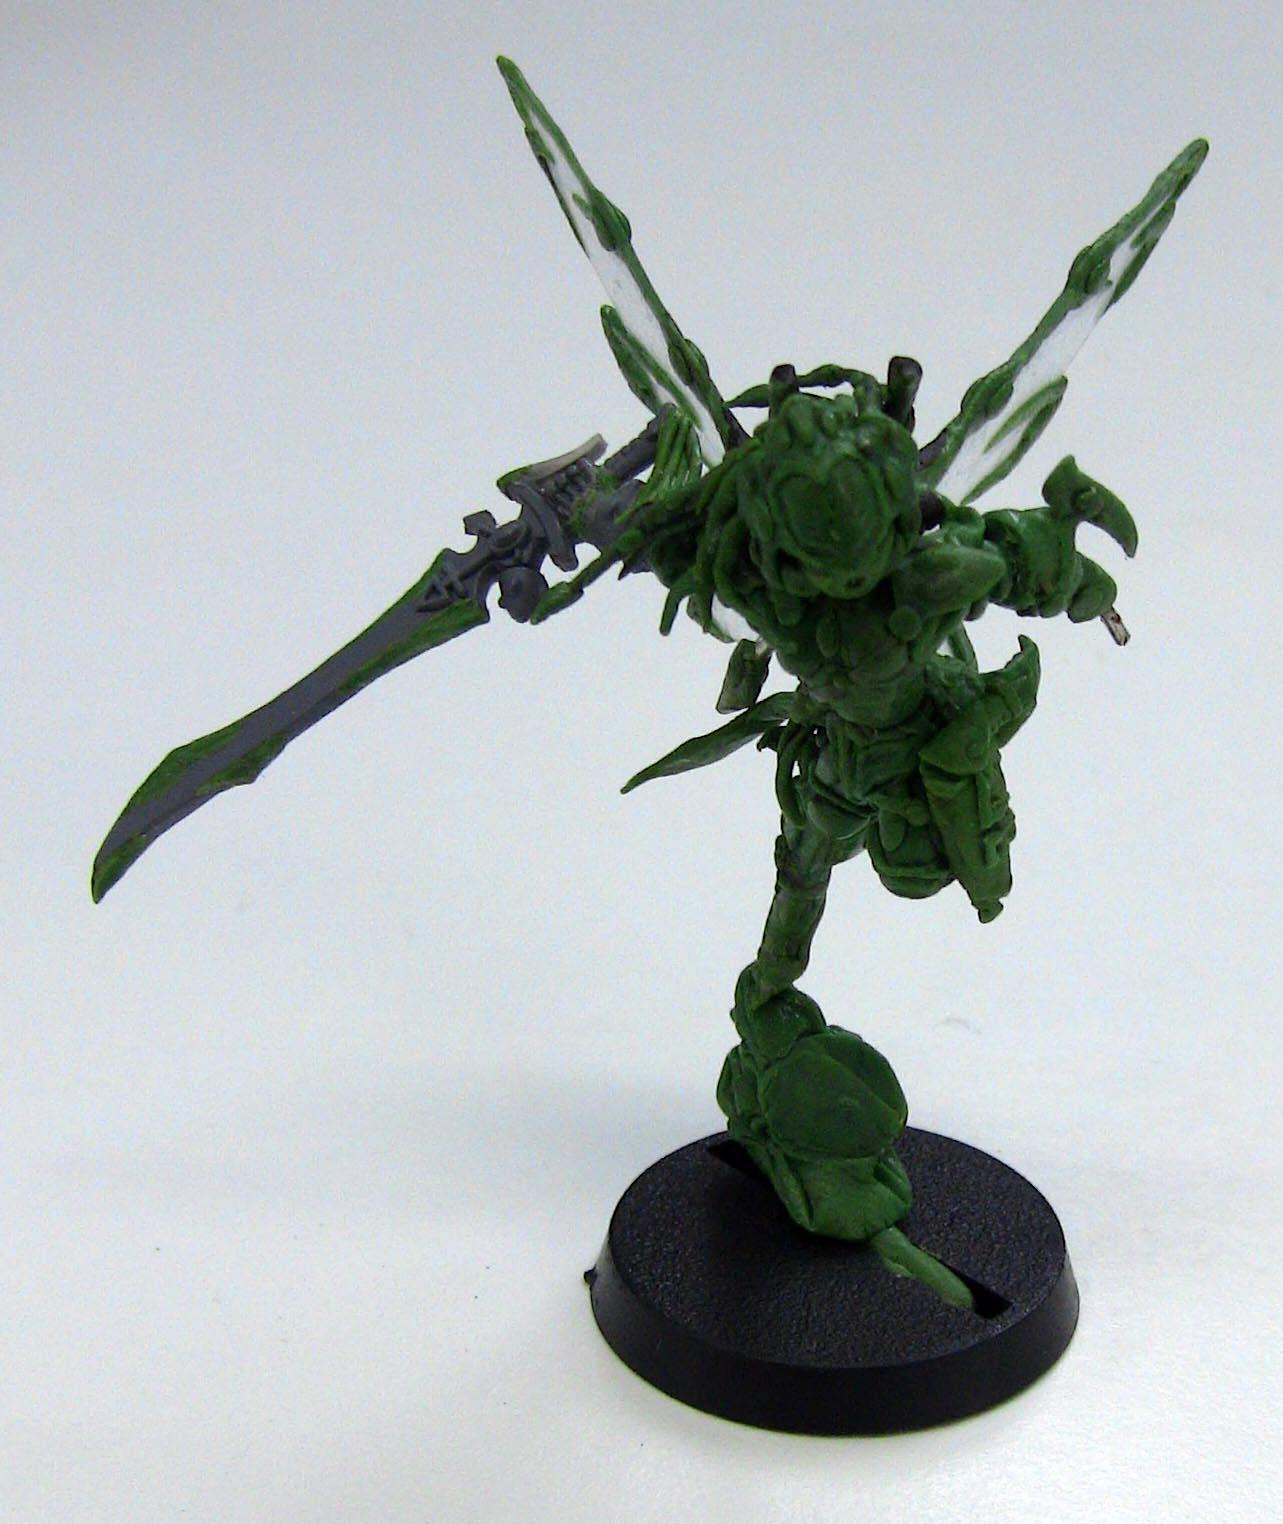 Autarch, Corsairs, Eldar, Eldar Corsair Autarch Fairy Fae Wings Green Stuff, Fairy Fae, Greenstuff, Warhammer 40,000, Winged, Work In Progress